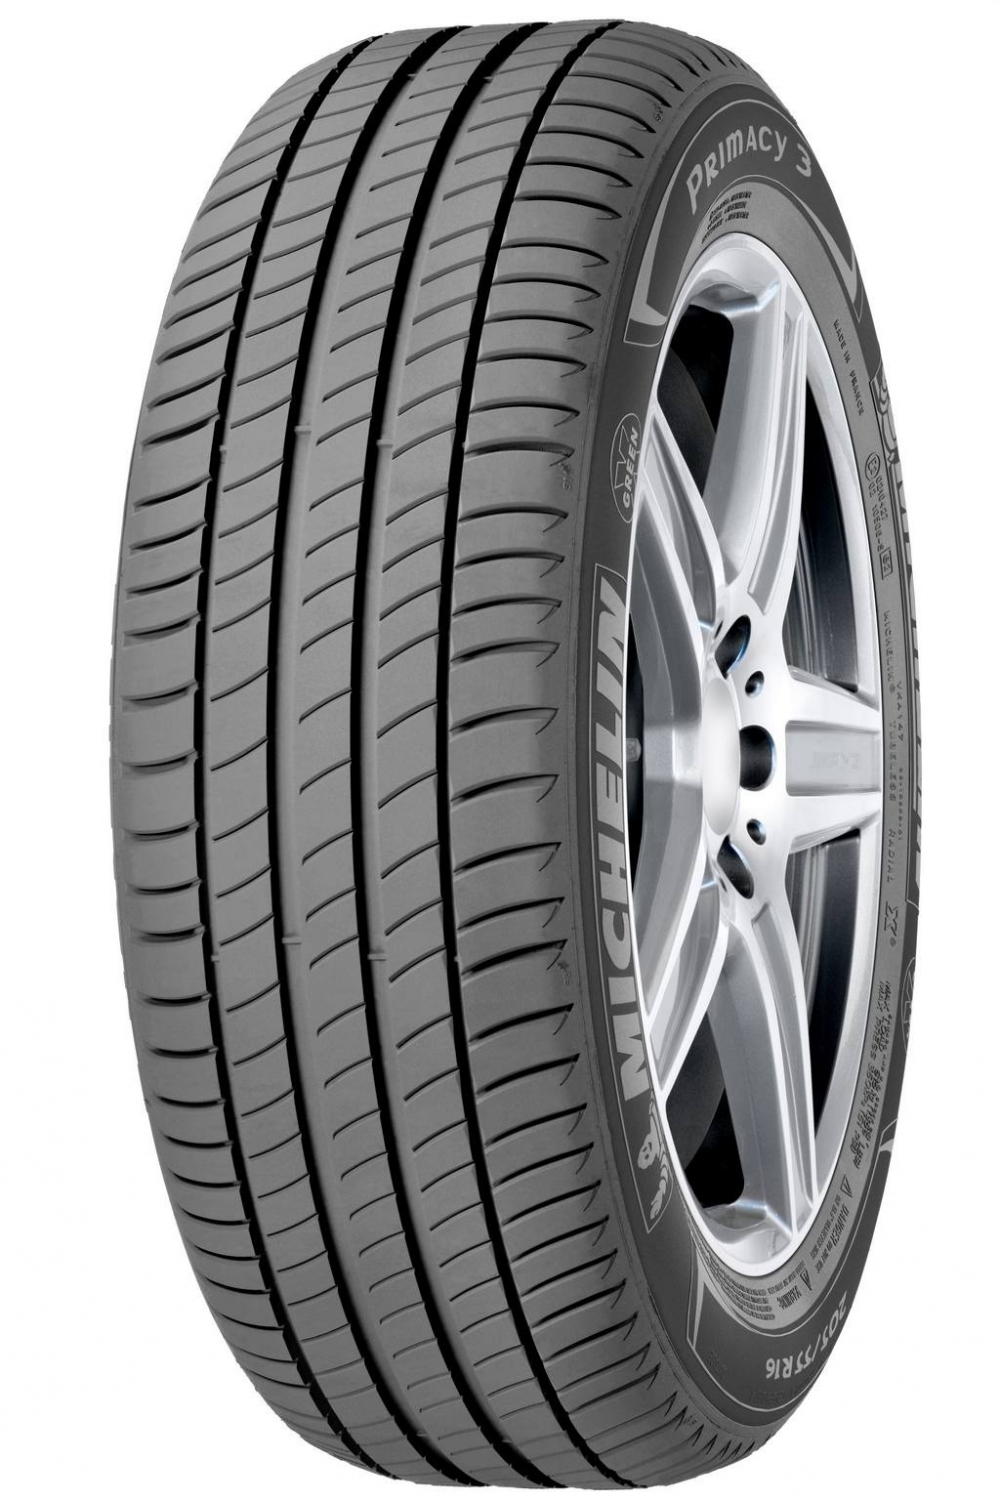 205/55 R17 95V XL Michelin Primacy 3